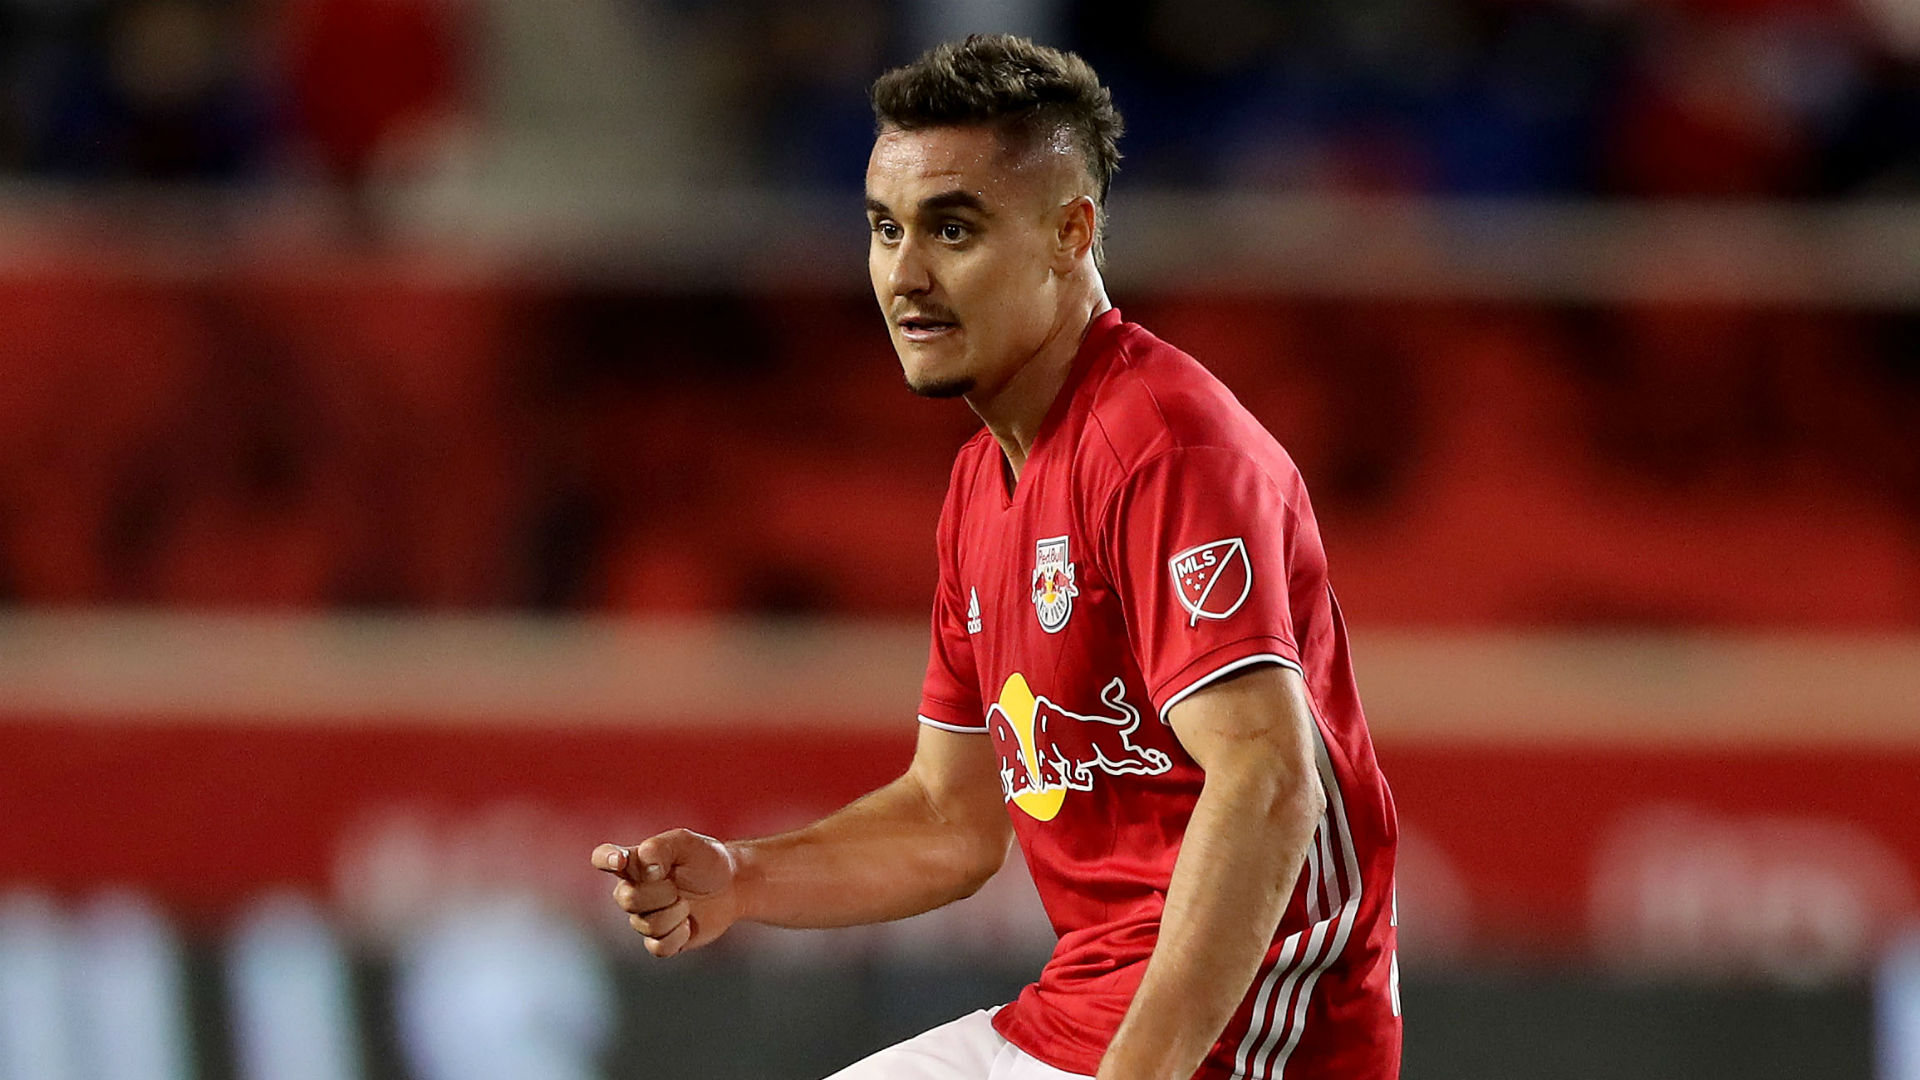 'We taught him our mentality' - USMNT's Aaron Long used German influence to blossom